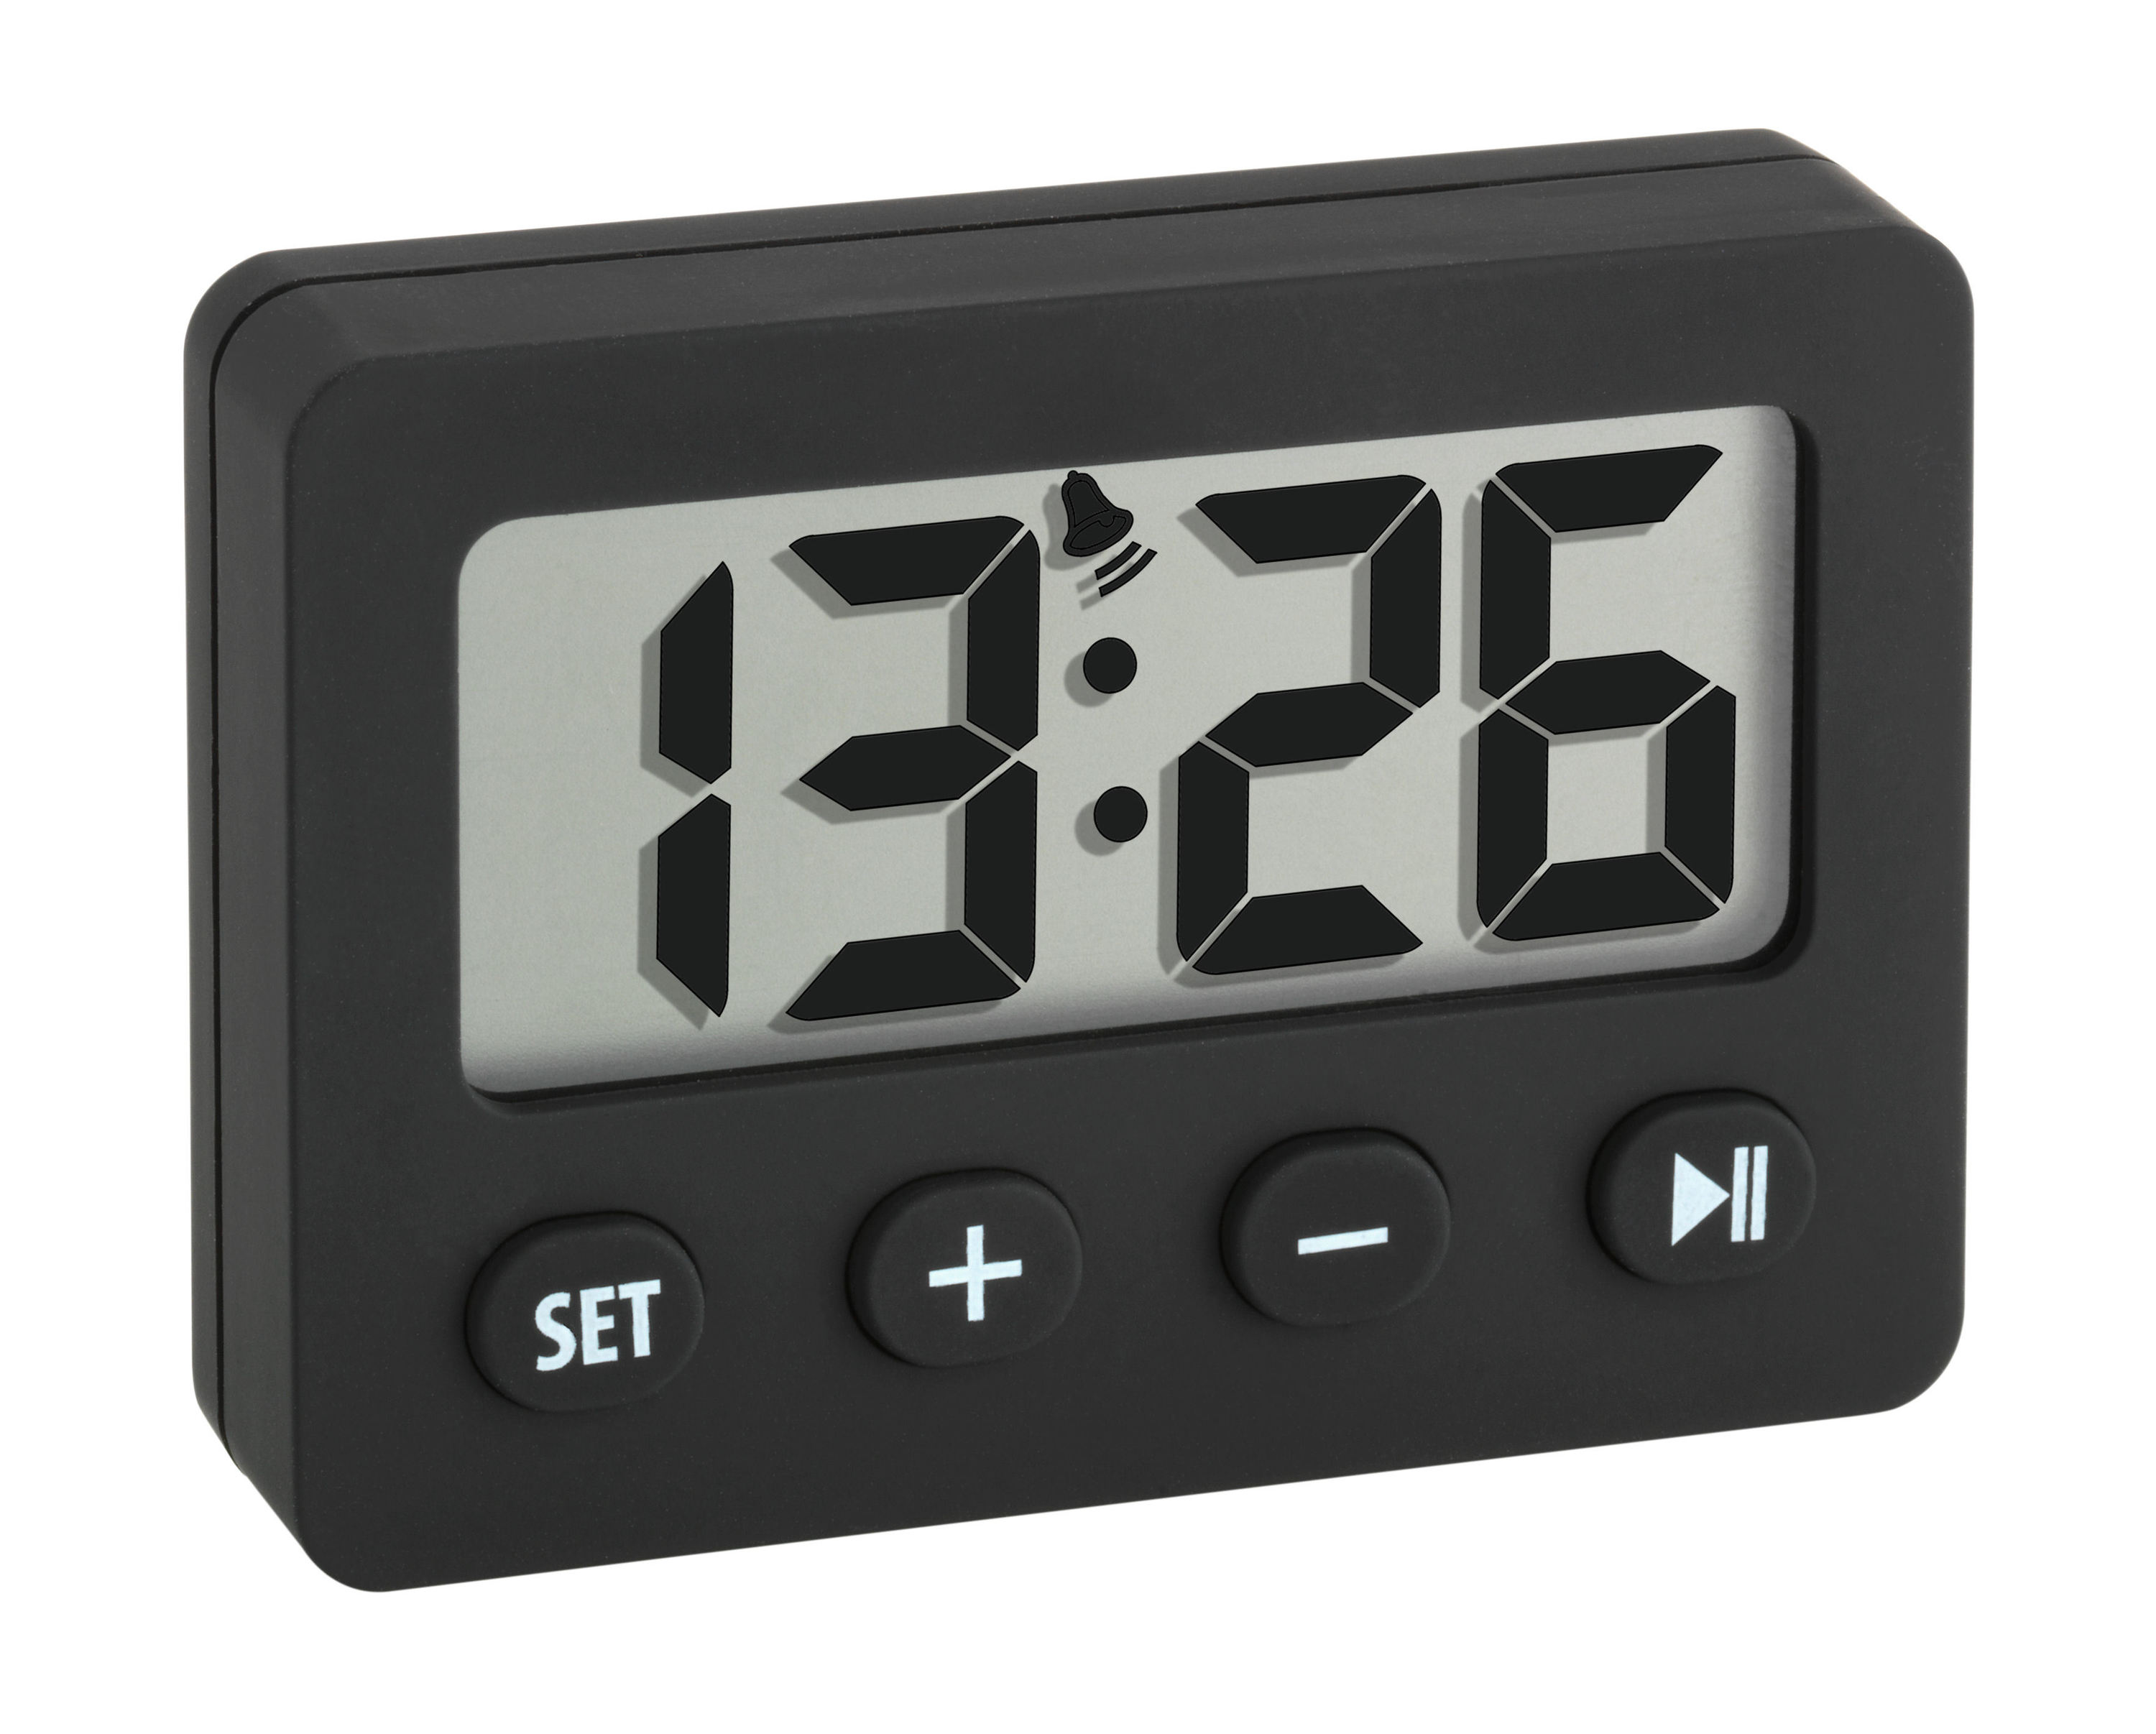 Digital Alarm Clock With Timer And Stopwatch | TFA Dostmann